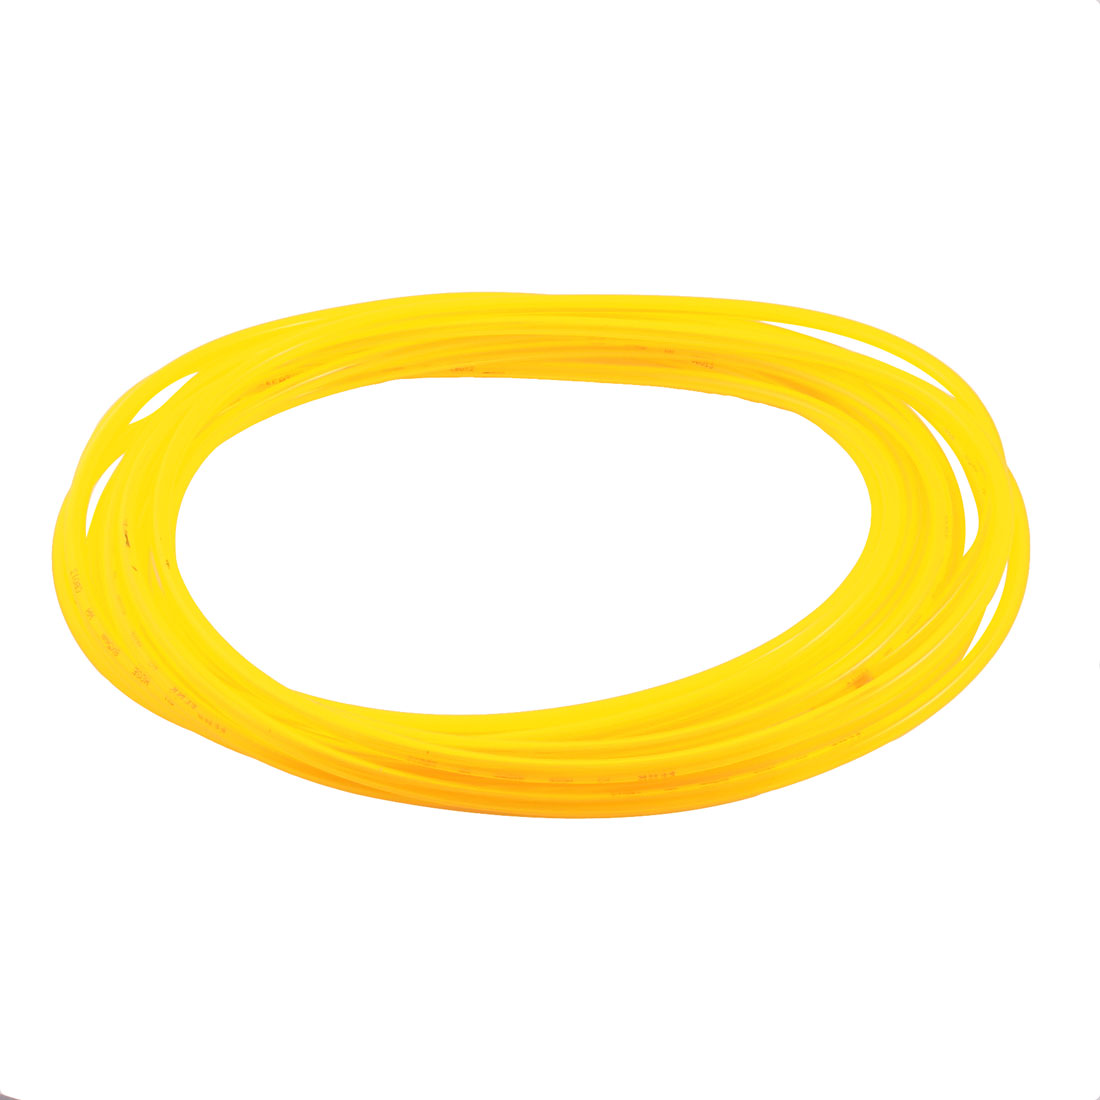 5mmx8mm 10M/33ft Long Clear Yellow Polyurethane Flexible Gas Fuel Water Hose Air PU Tube Pneumatic Pipe